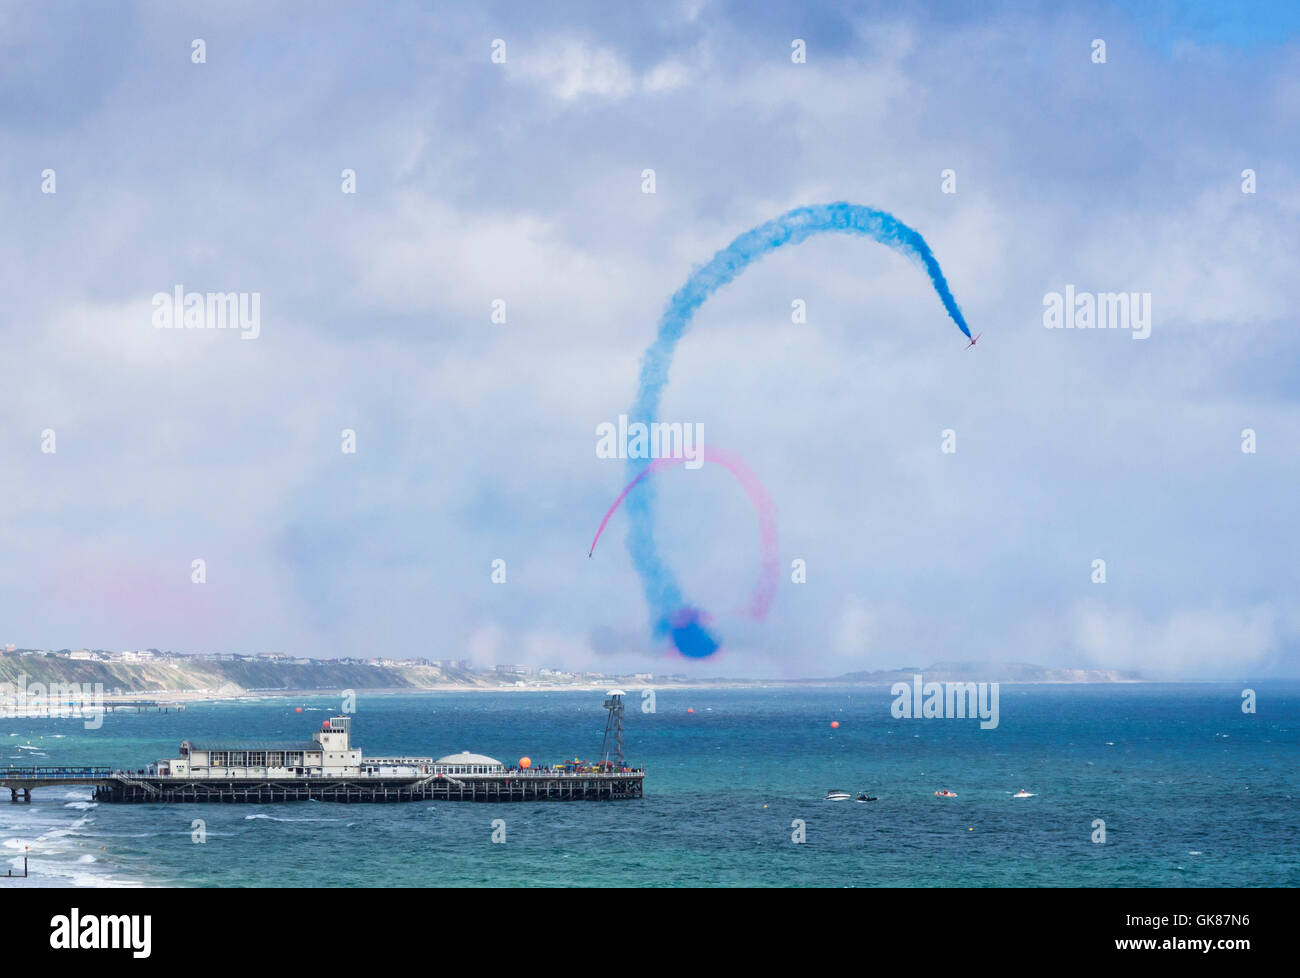 The Red Arrows, the Royal Air Force Aerobatic Team displaying their skills over Bournemouth and Poole Bay, Dorset, - Stock Image